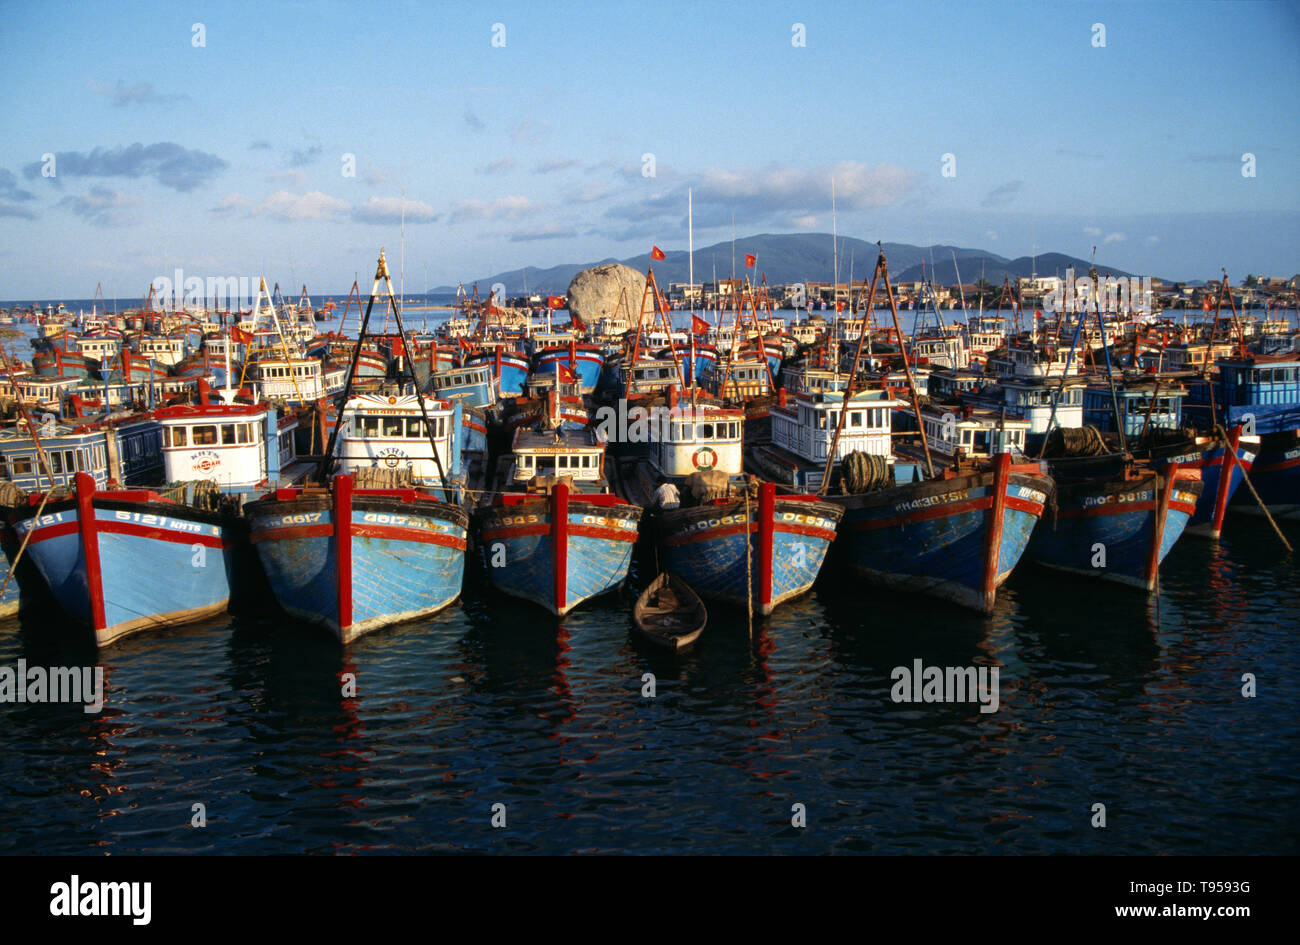 Vietnam. Nha Trang. Rows of moored fishing boats in harbour. - Stock Image